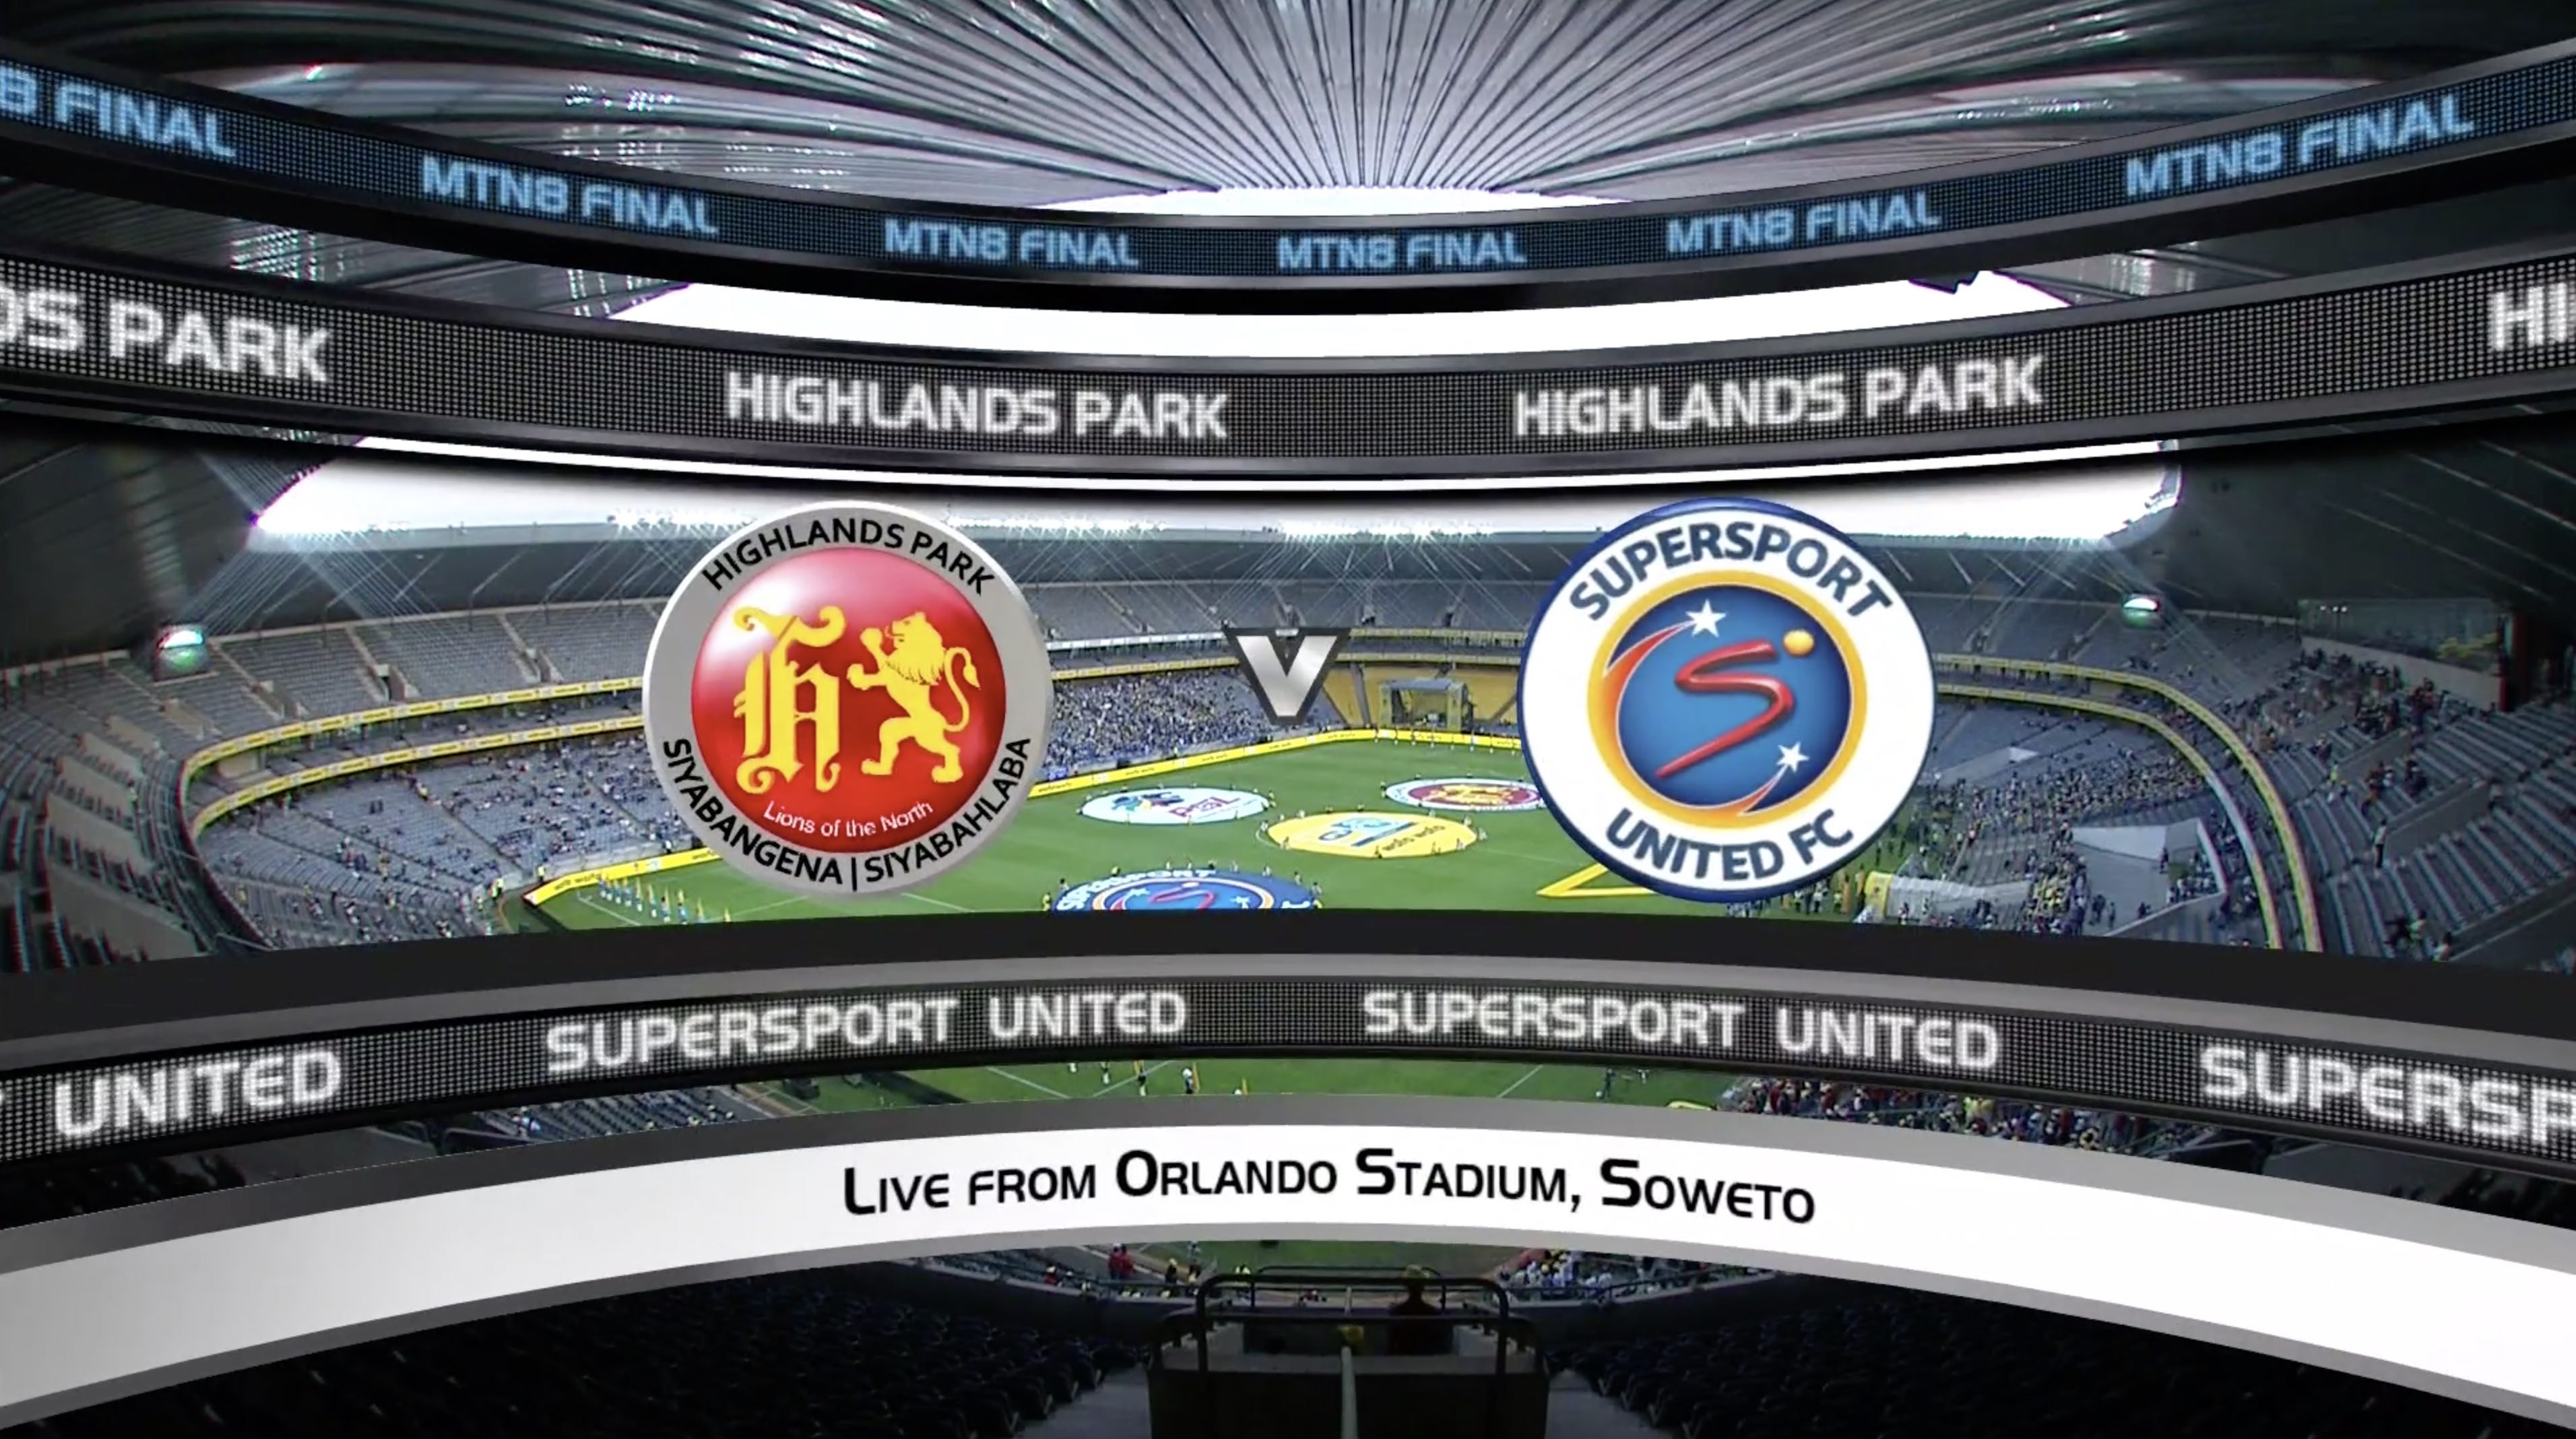 MTN8 | | Final | SuperSport United v Highlands Park | Highlights